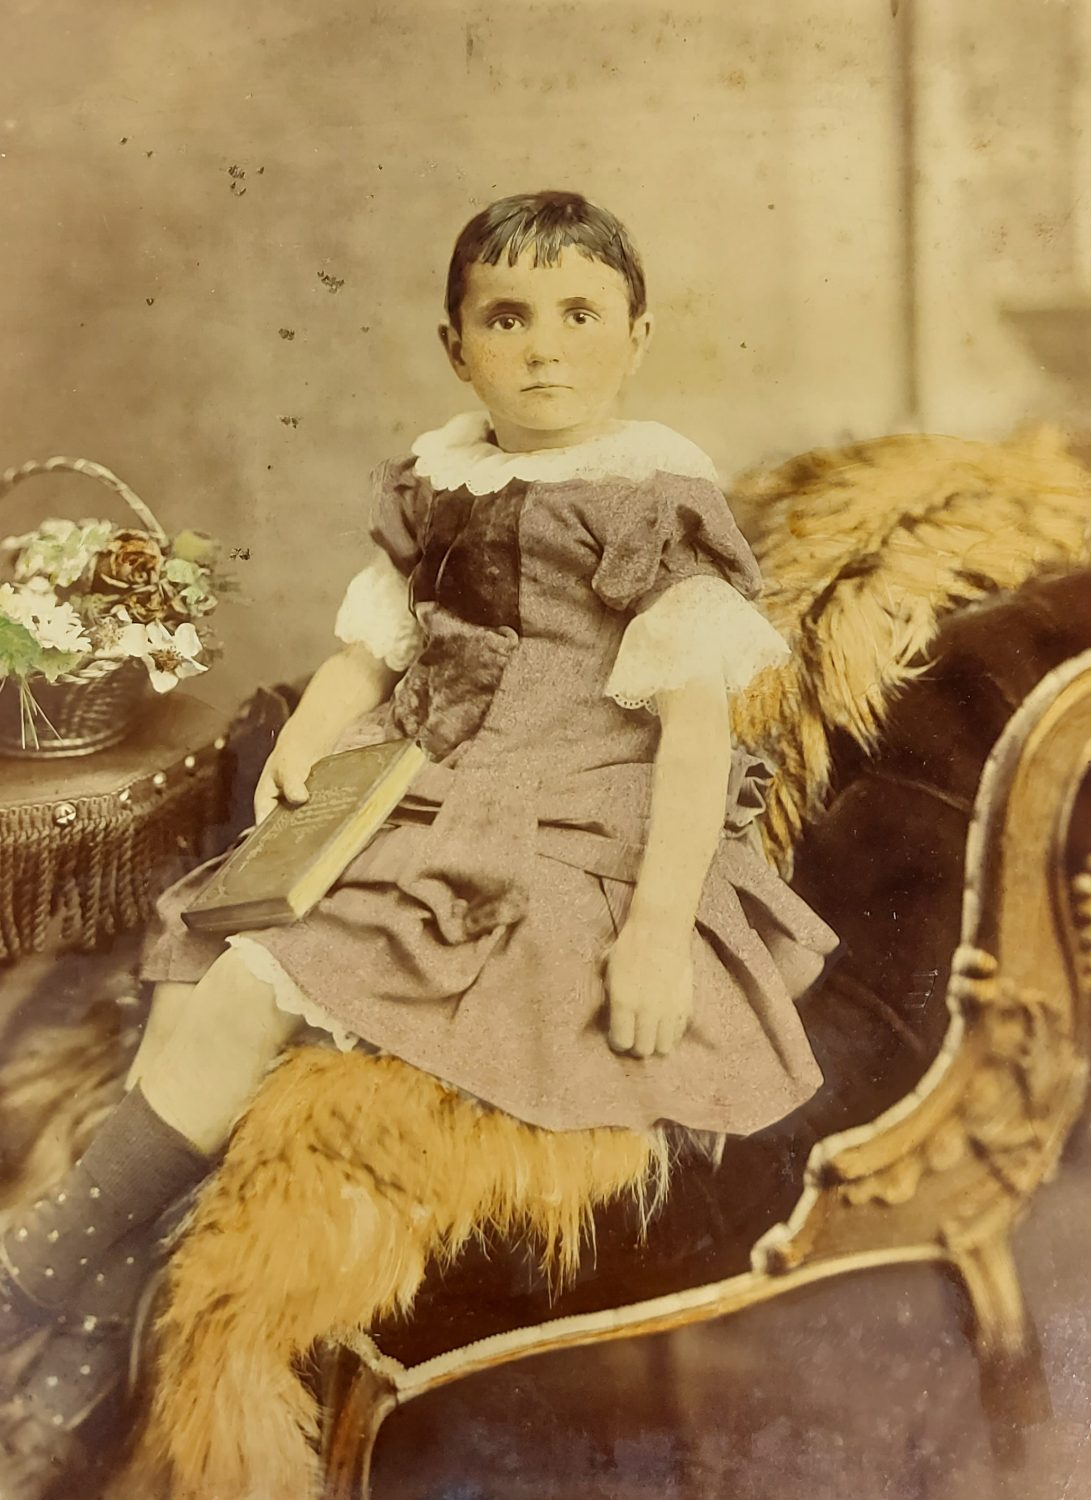 Coloured photograph of a child seated on a chair facing the camera. The child wearing a dress with fancy details such as bowes on the sleeves and down the bodice. Short sleeves feature lace detail and a lace collar.